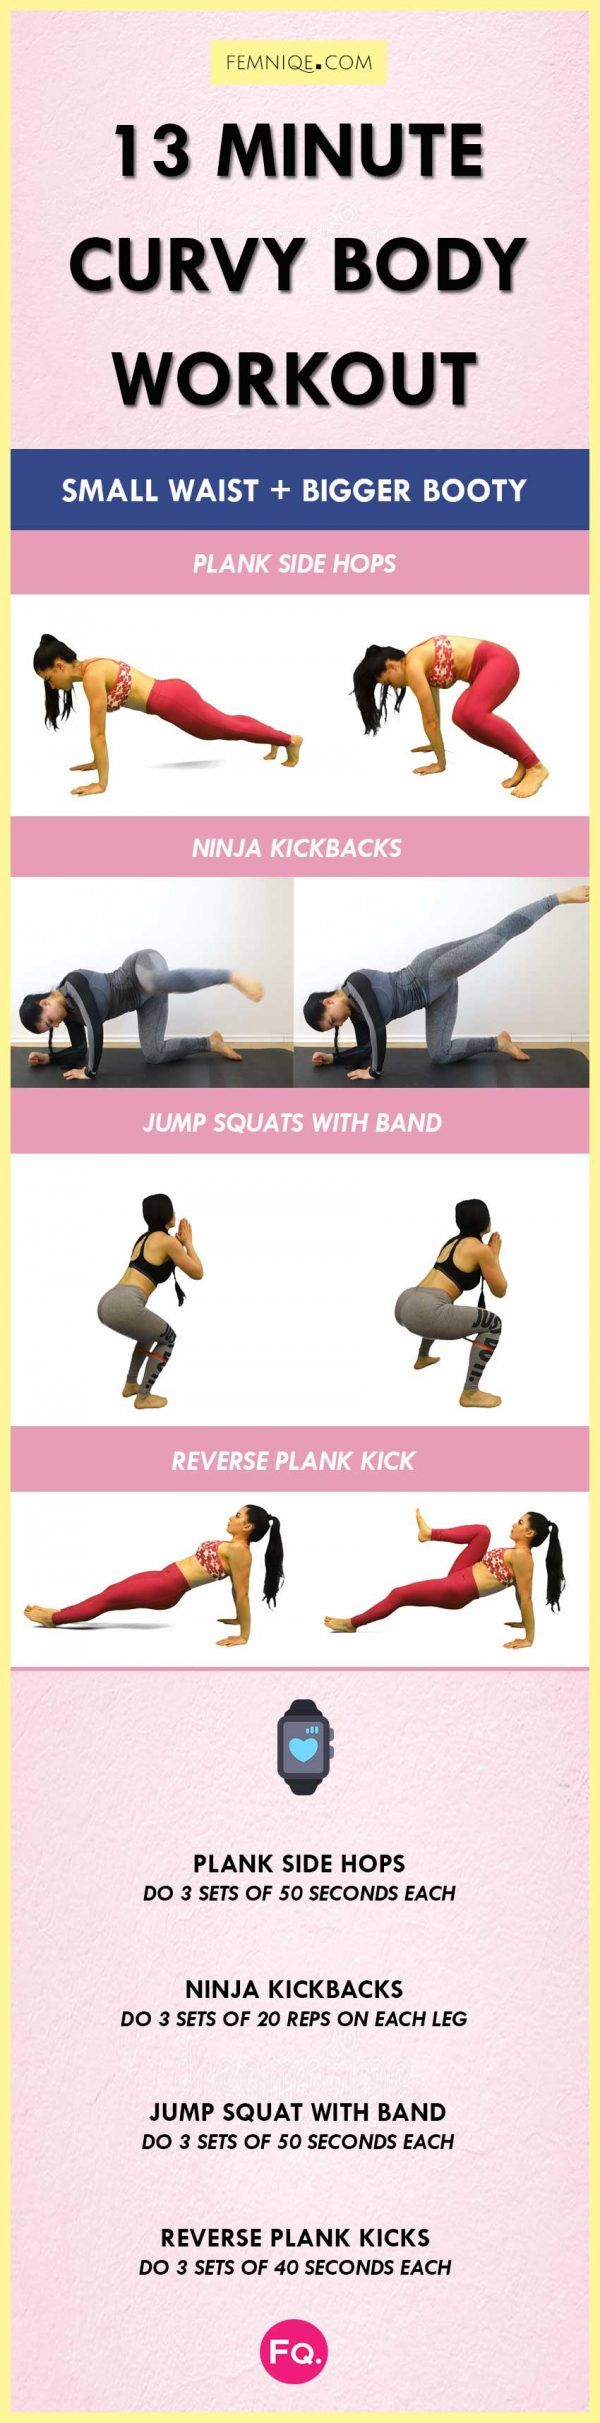 13 Min Curvy Body Workout | Posted By: AdvancedWeightLossTips.com